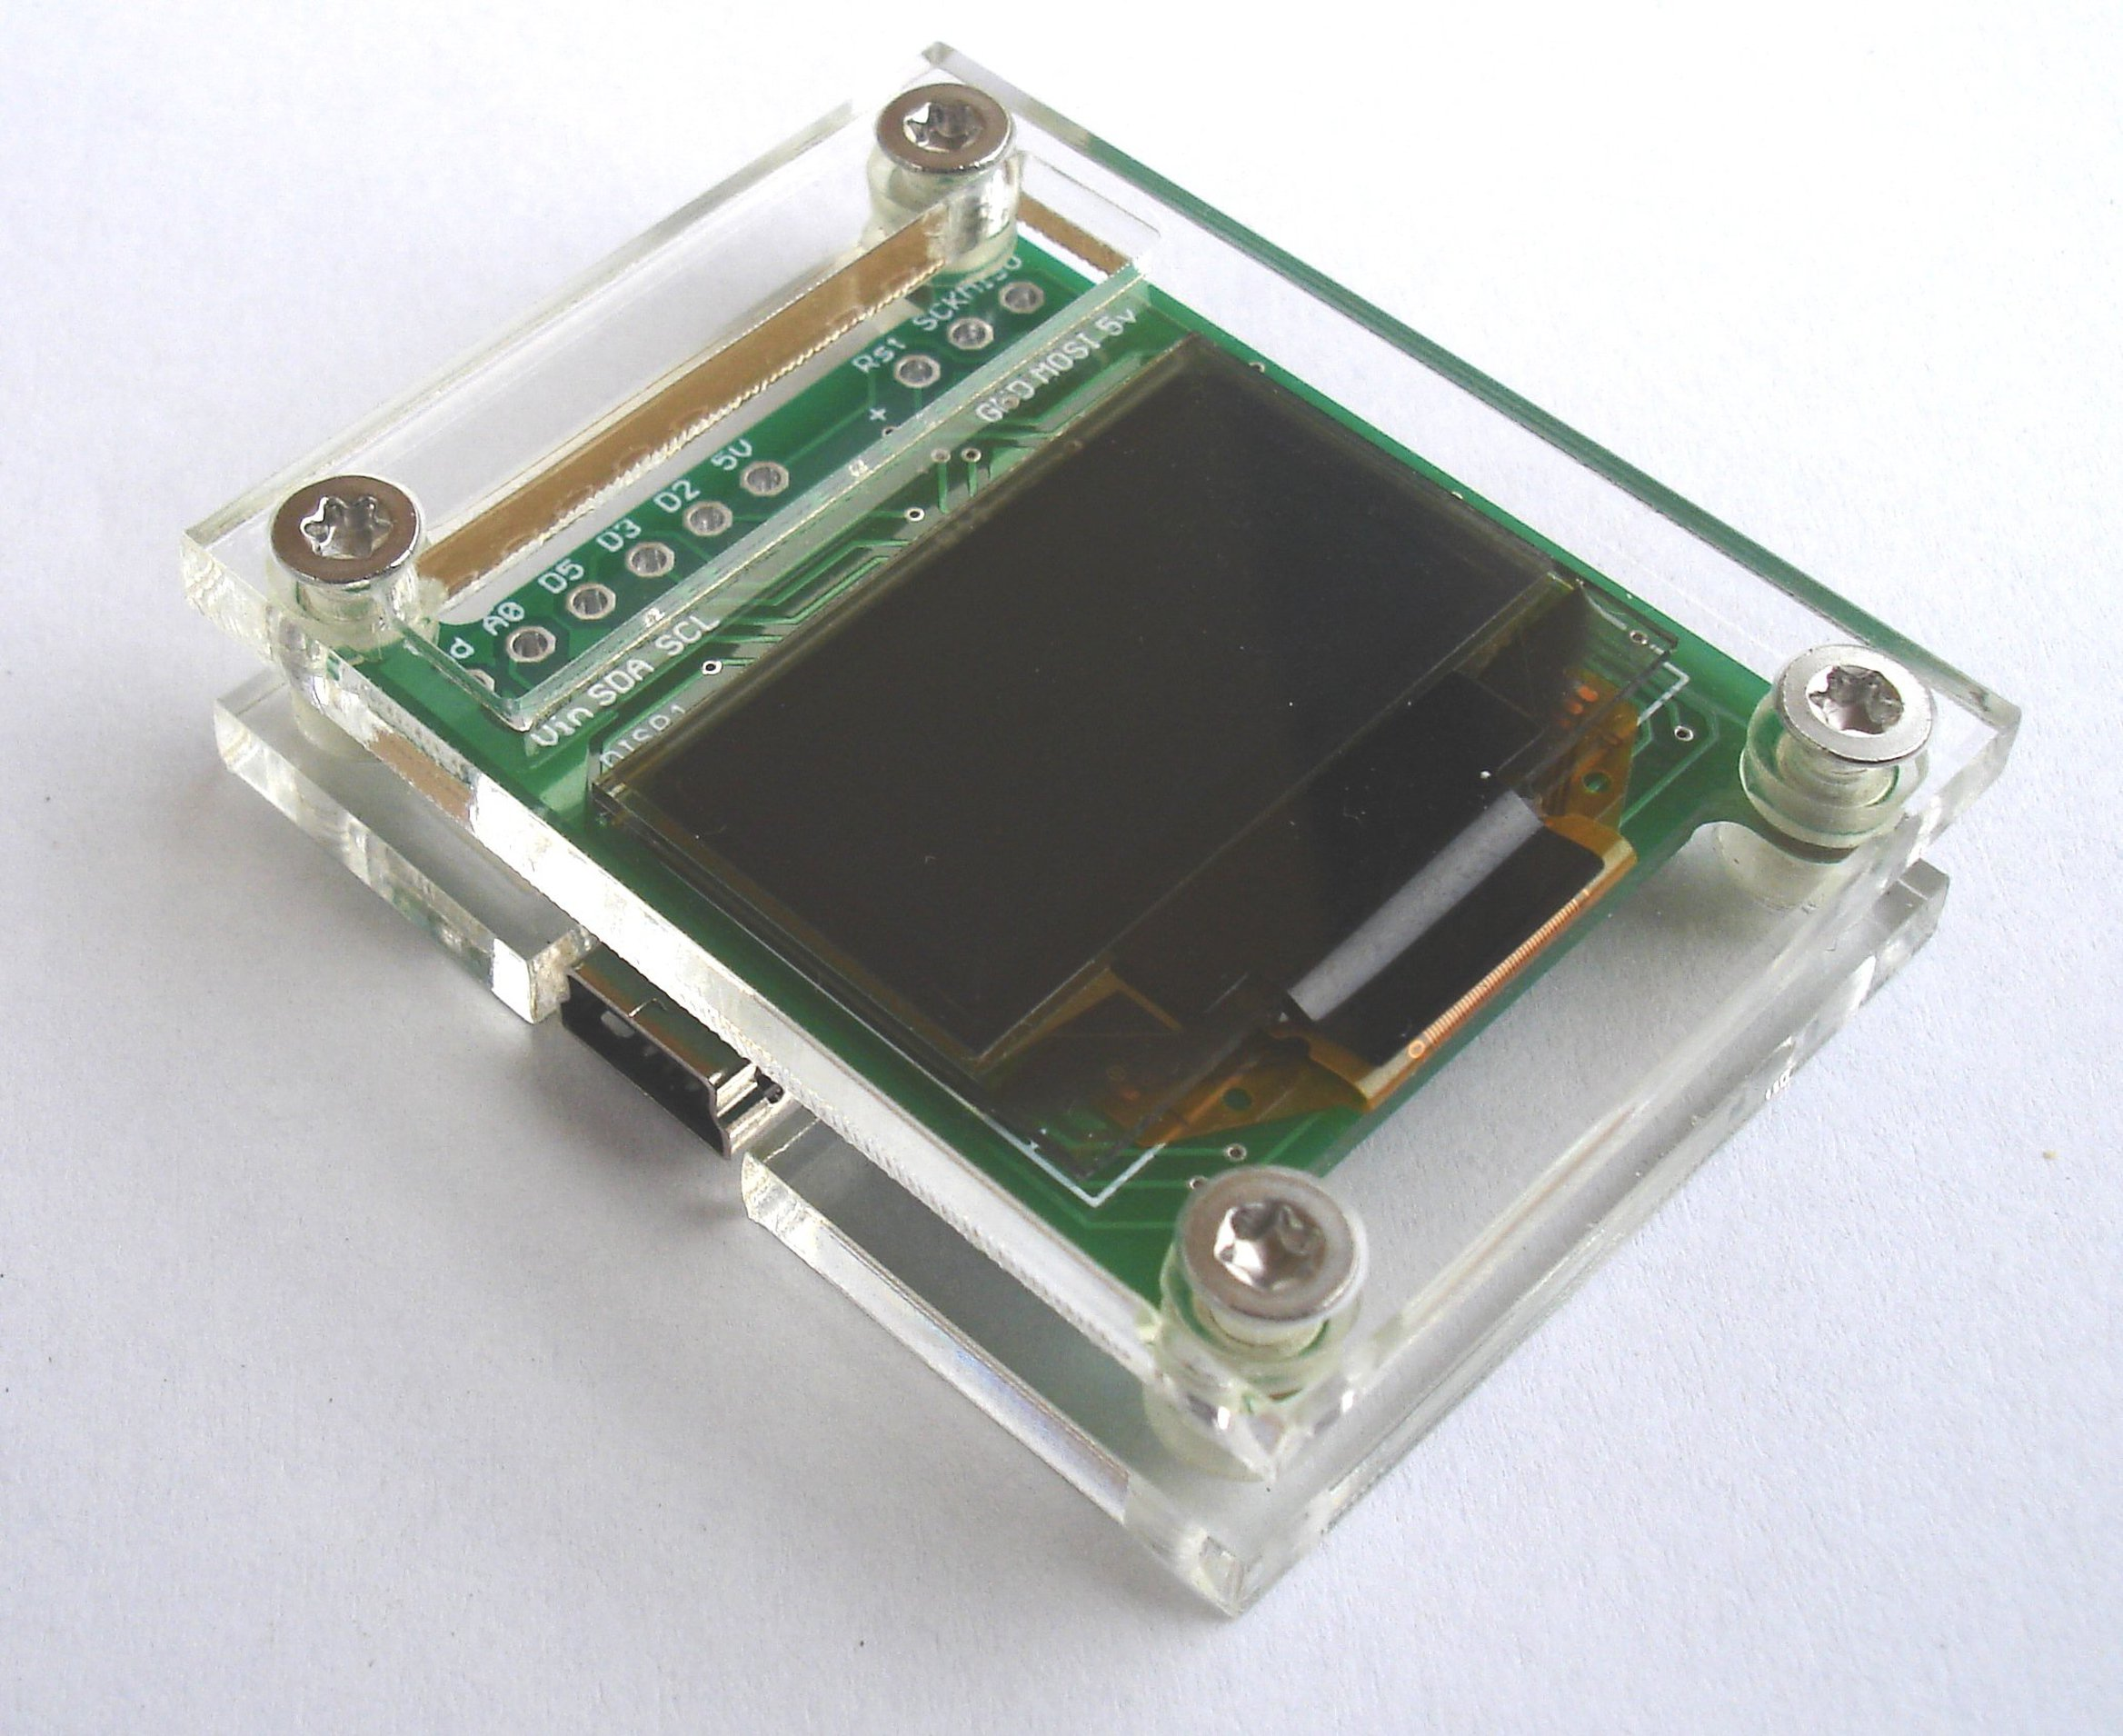 A new ATMega328p board with onboard OLED Display